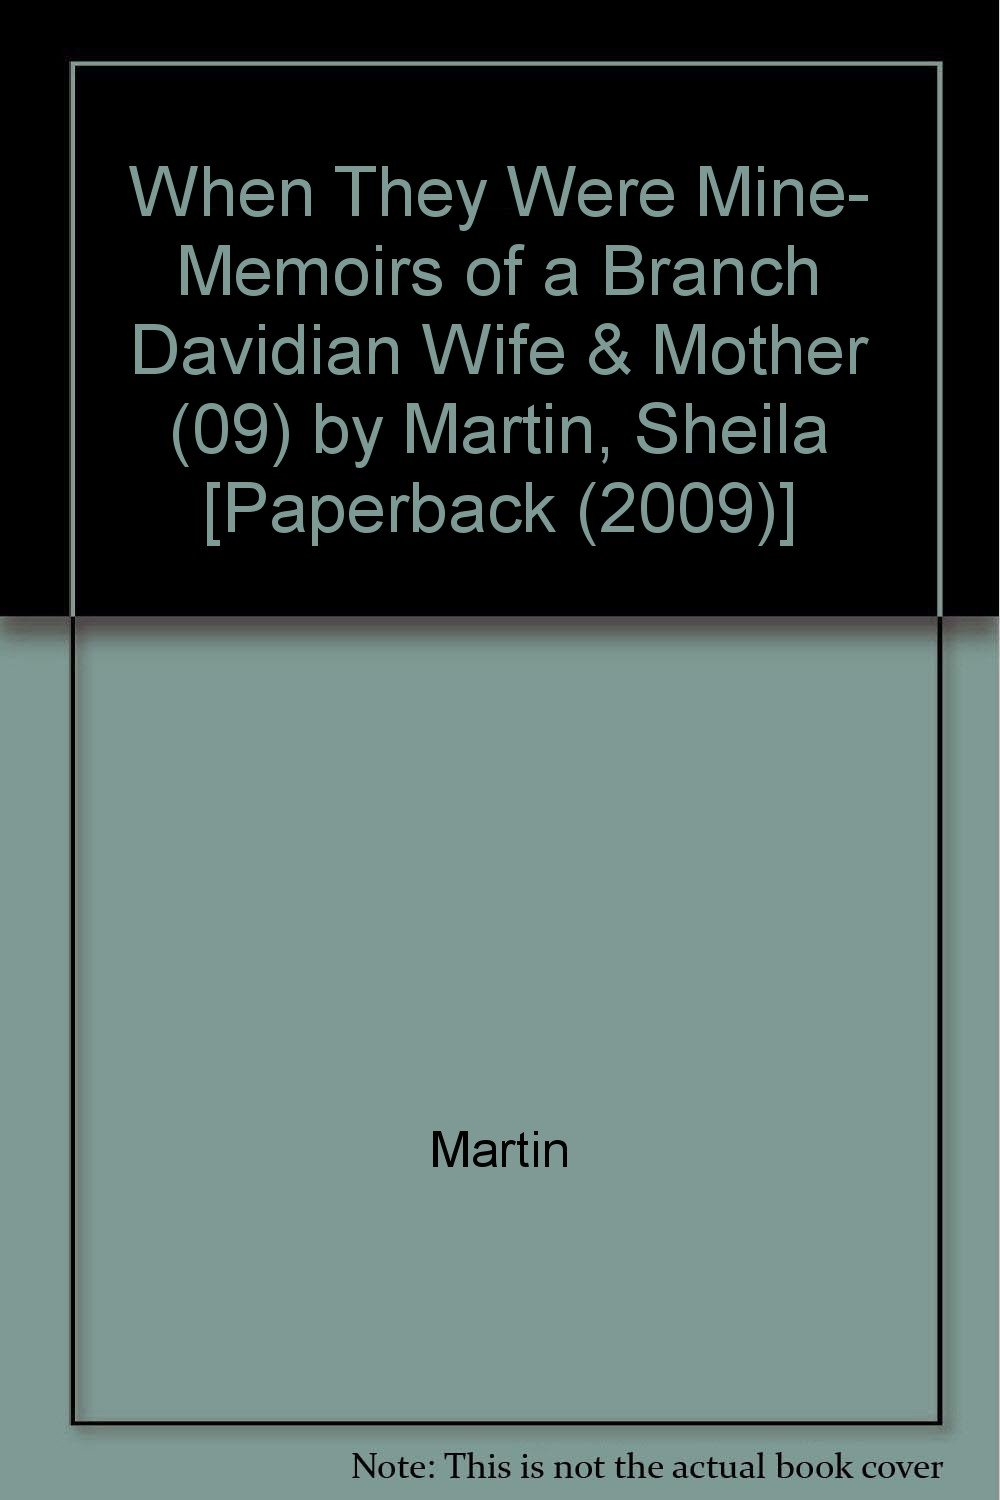 Download When They Were Mine- Memoirs of a Branch Davidian Wife & Mother (09) by Martin, Sheila [Paperback (2009)] ebook